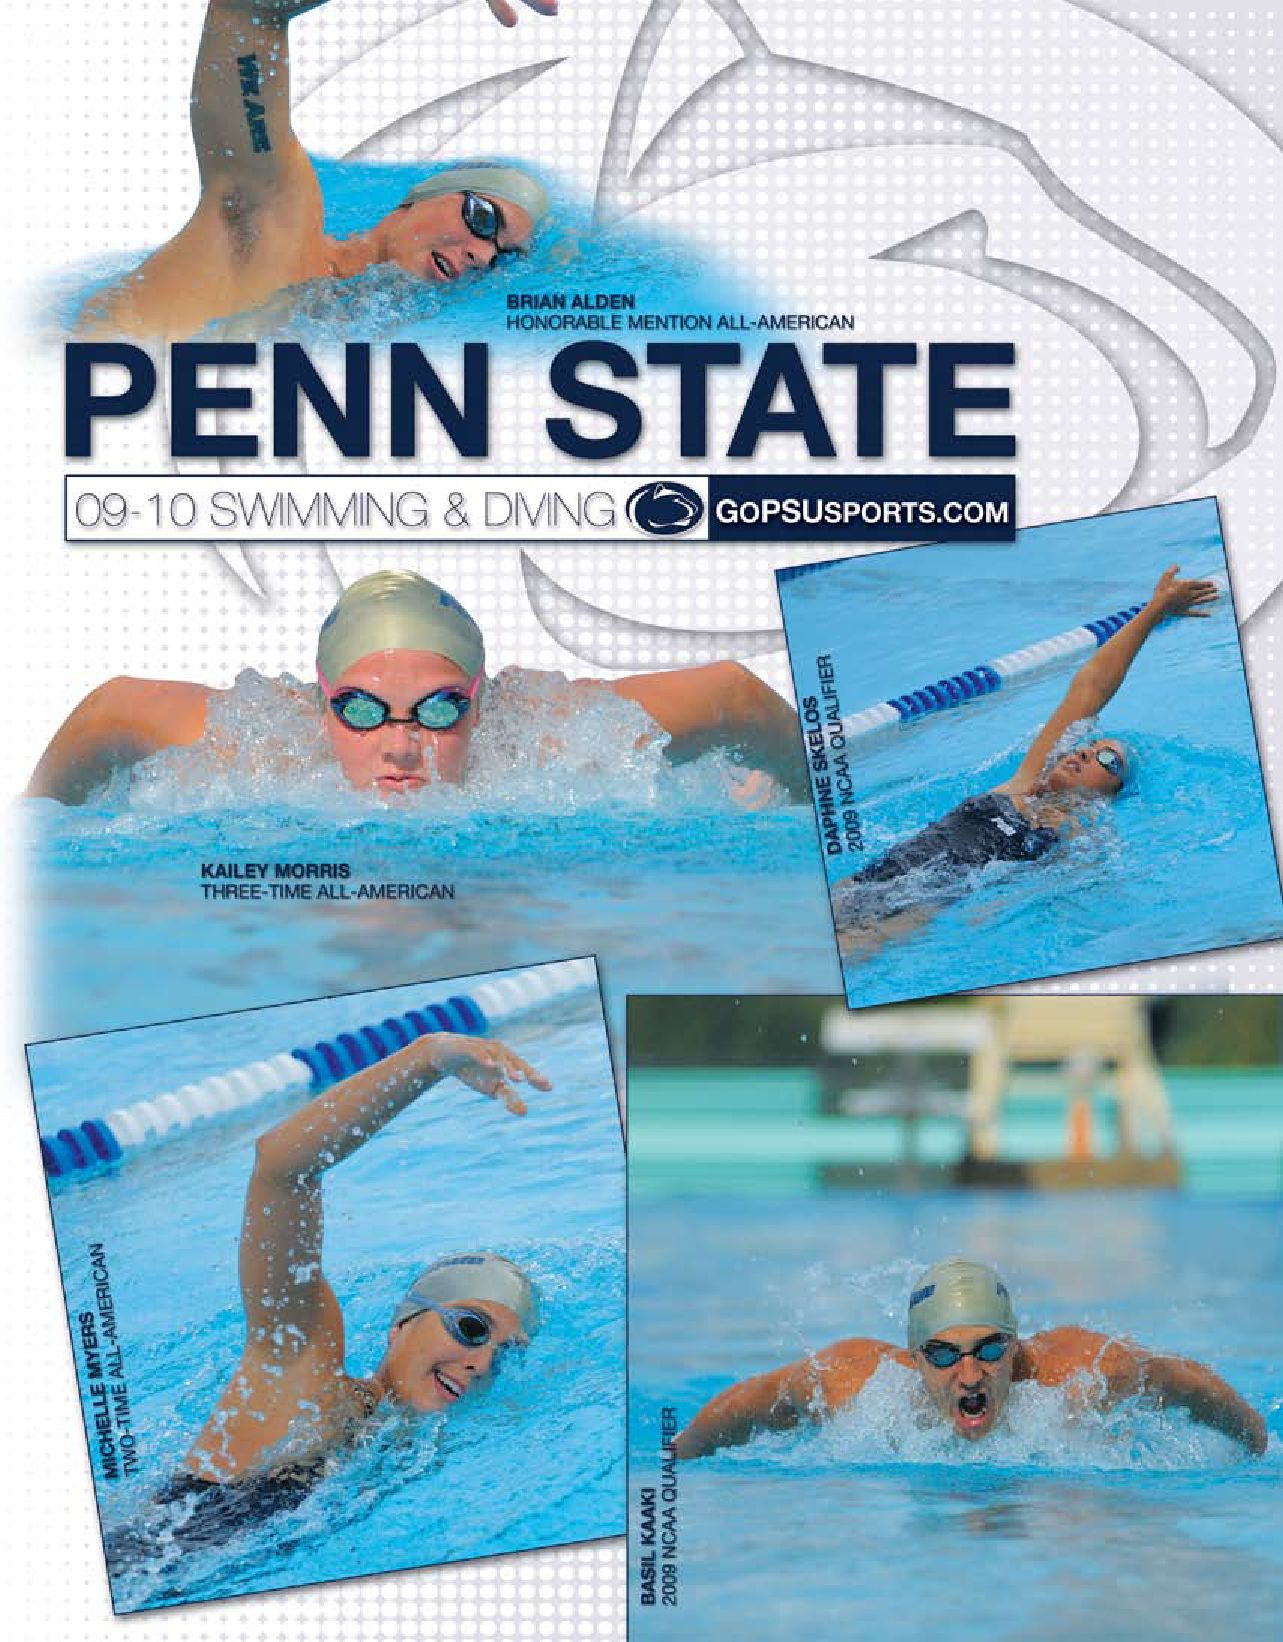 2009 Penn State Swimming   Diving Media Guide by Justin Lafleur - issuu 82c268ba2